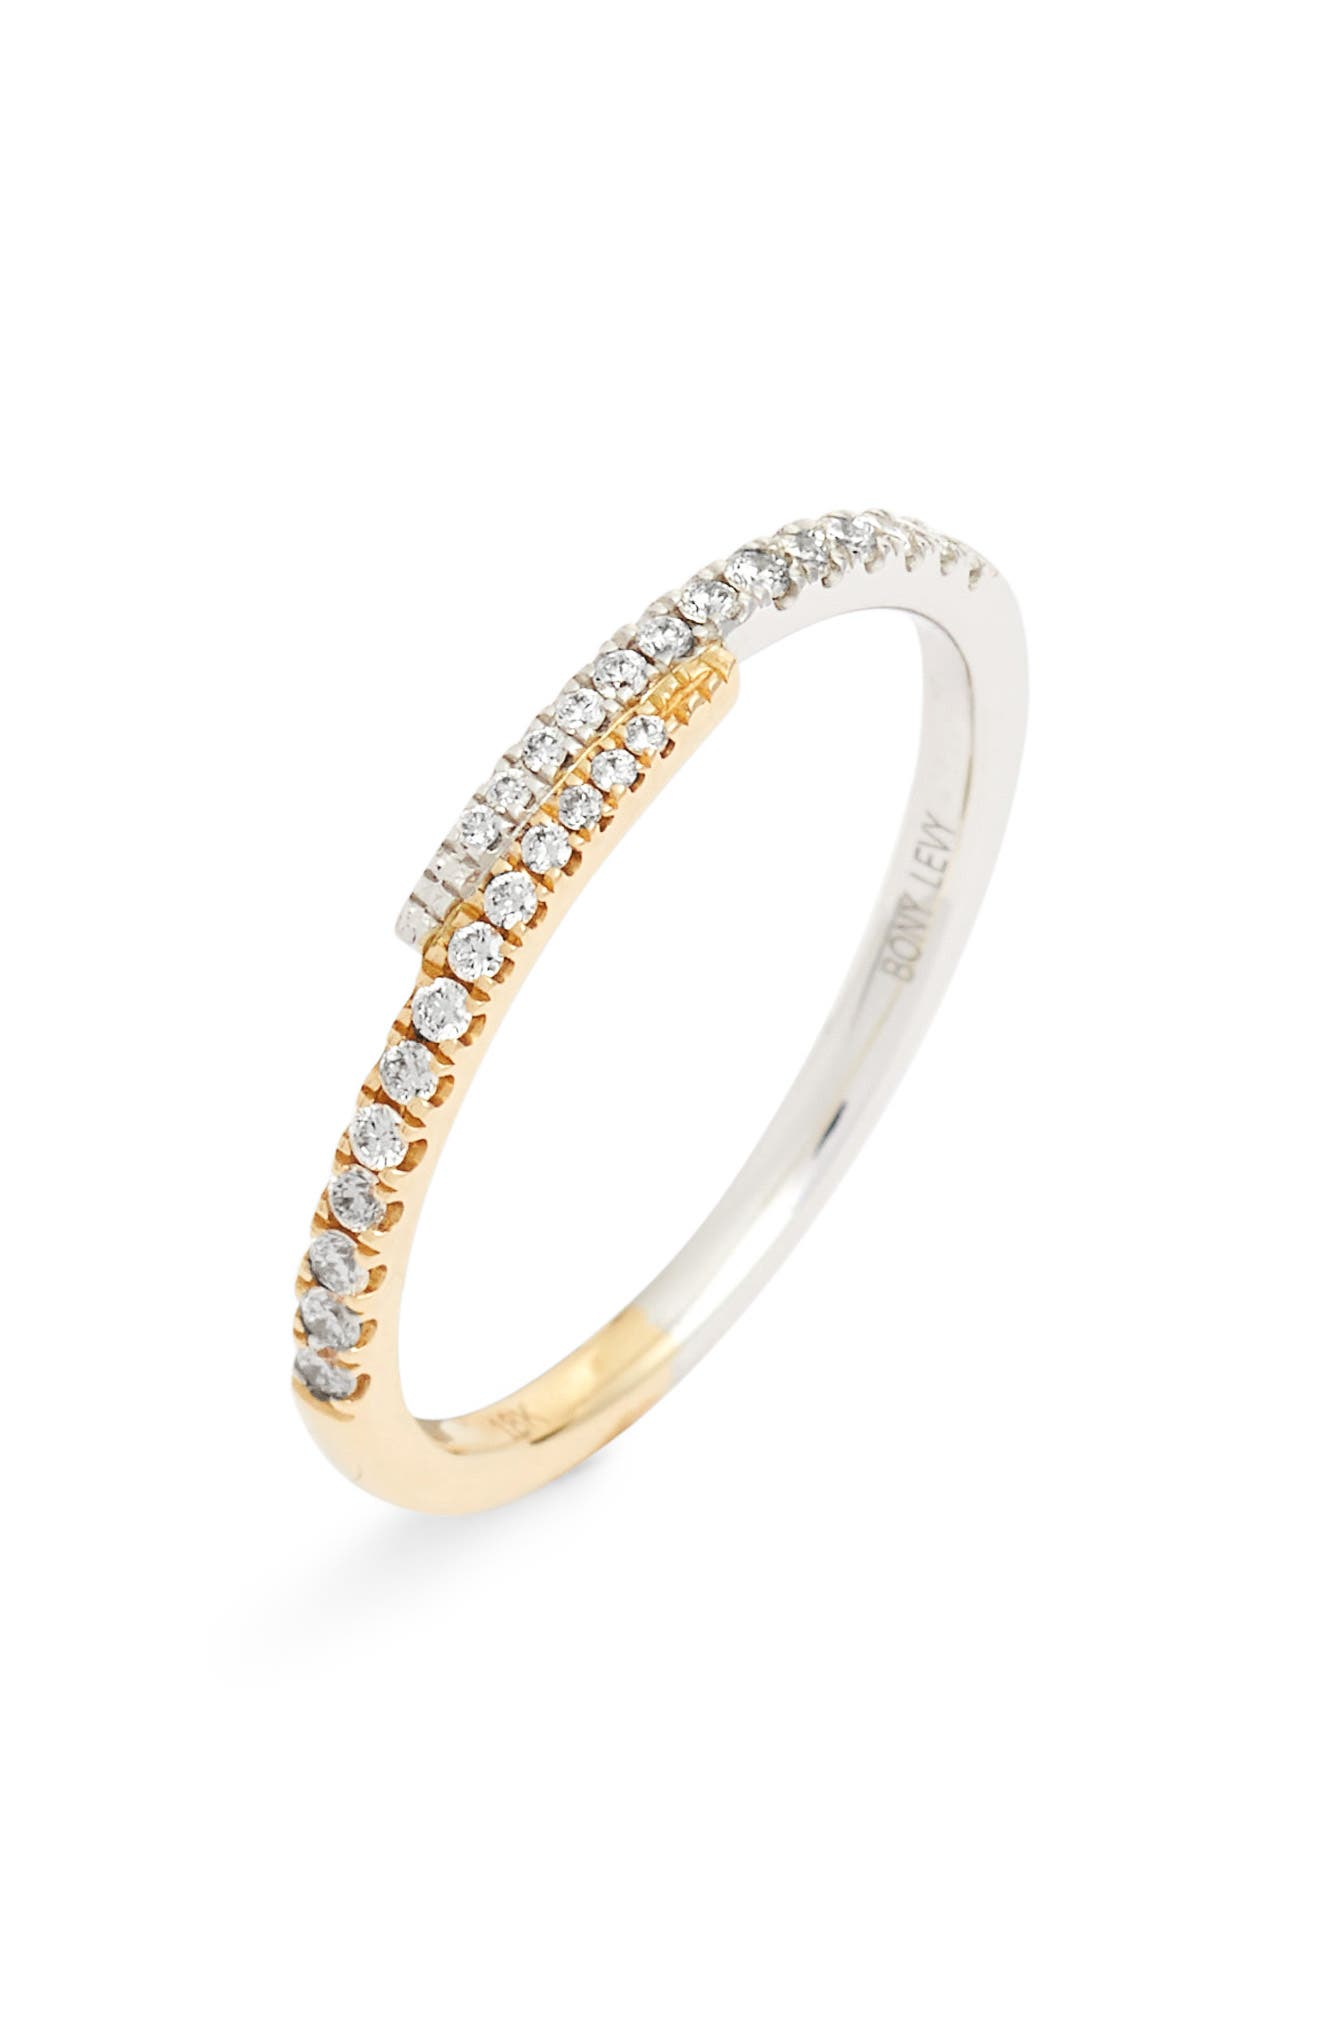 Diamond Overlap Stacking Ring,                         Main,                         color, YELLOW GOLD/ WHITE GOLD